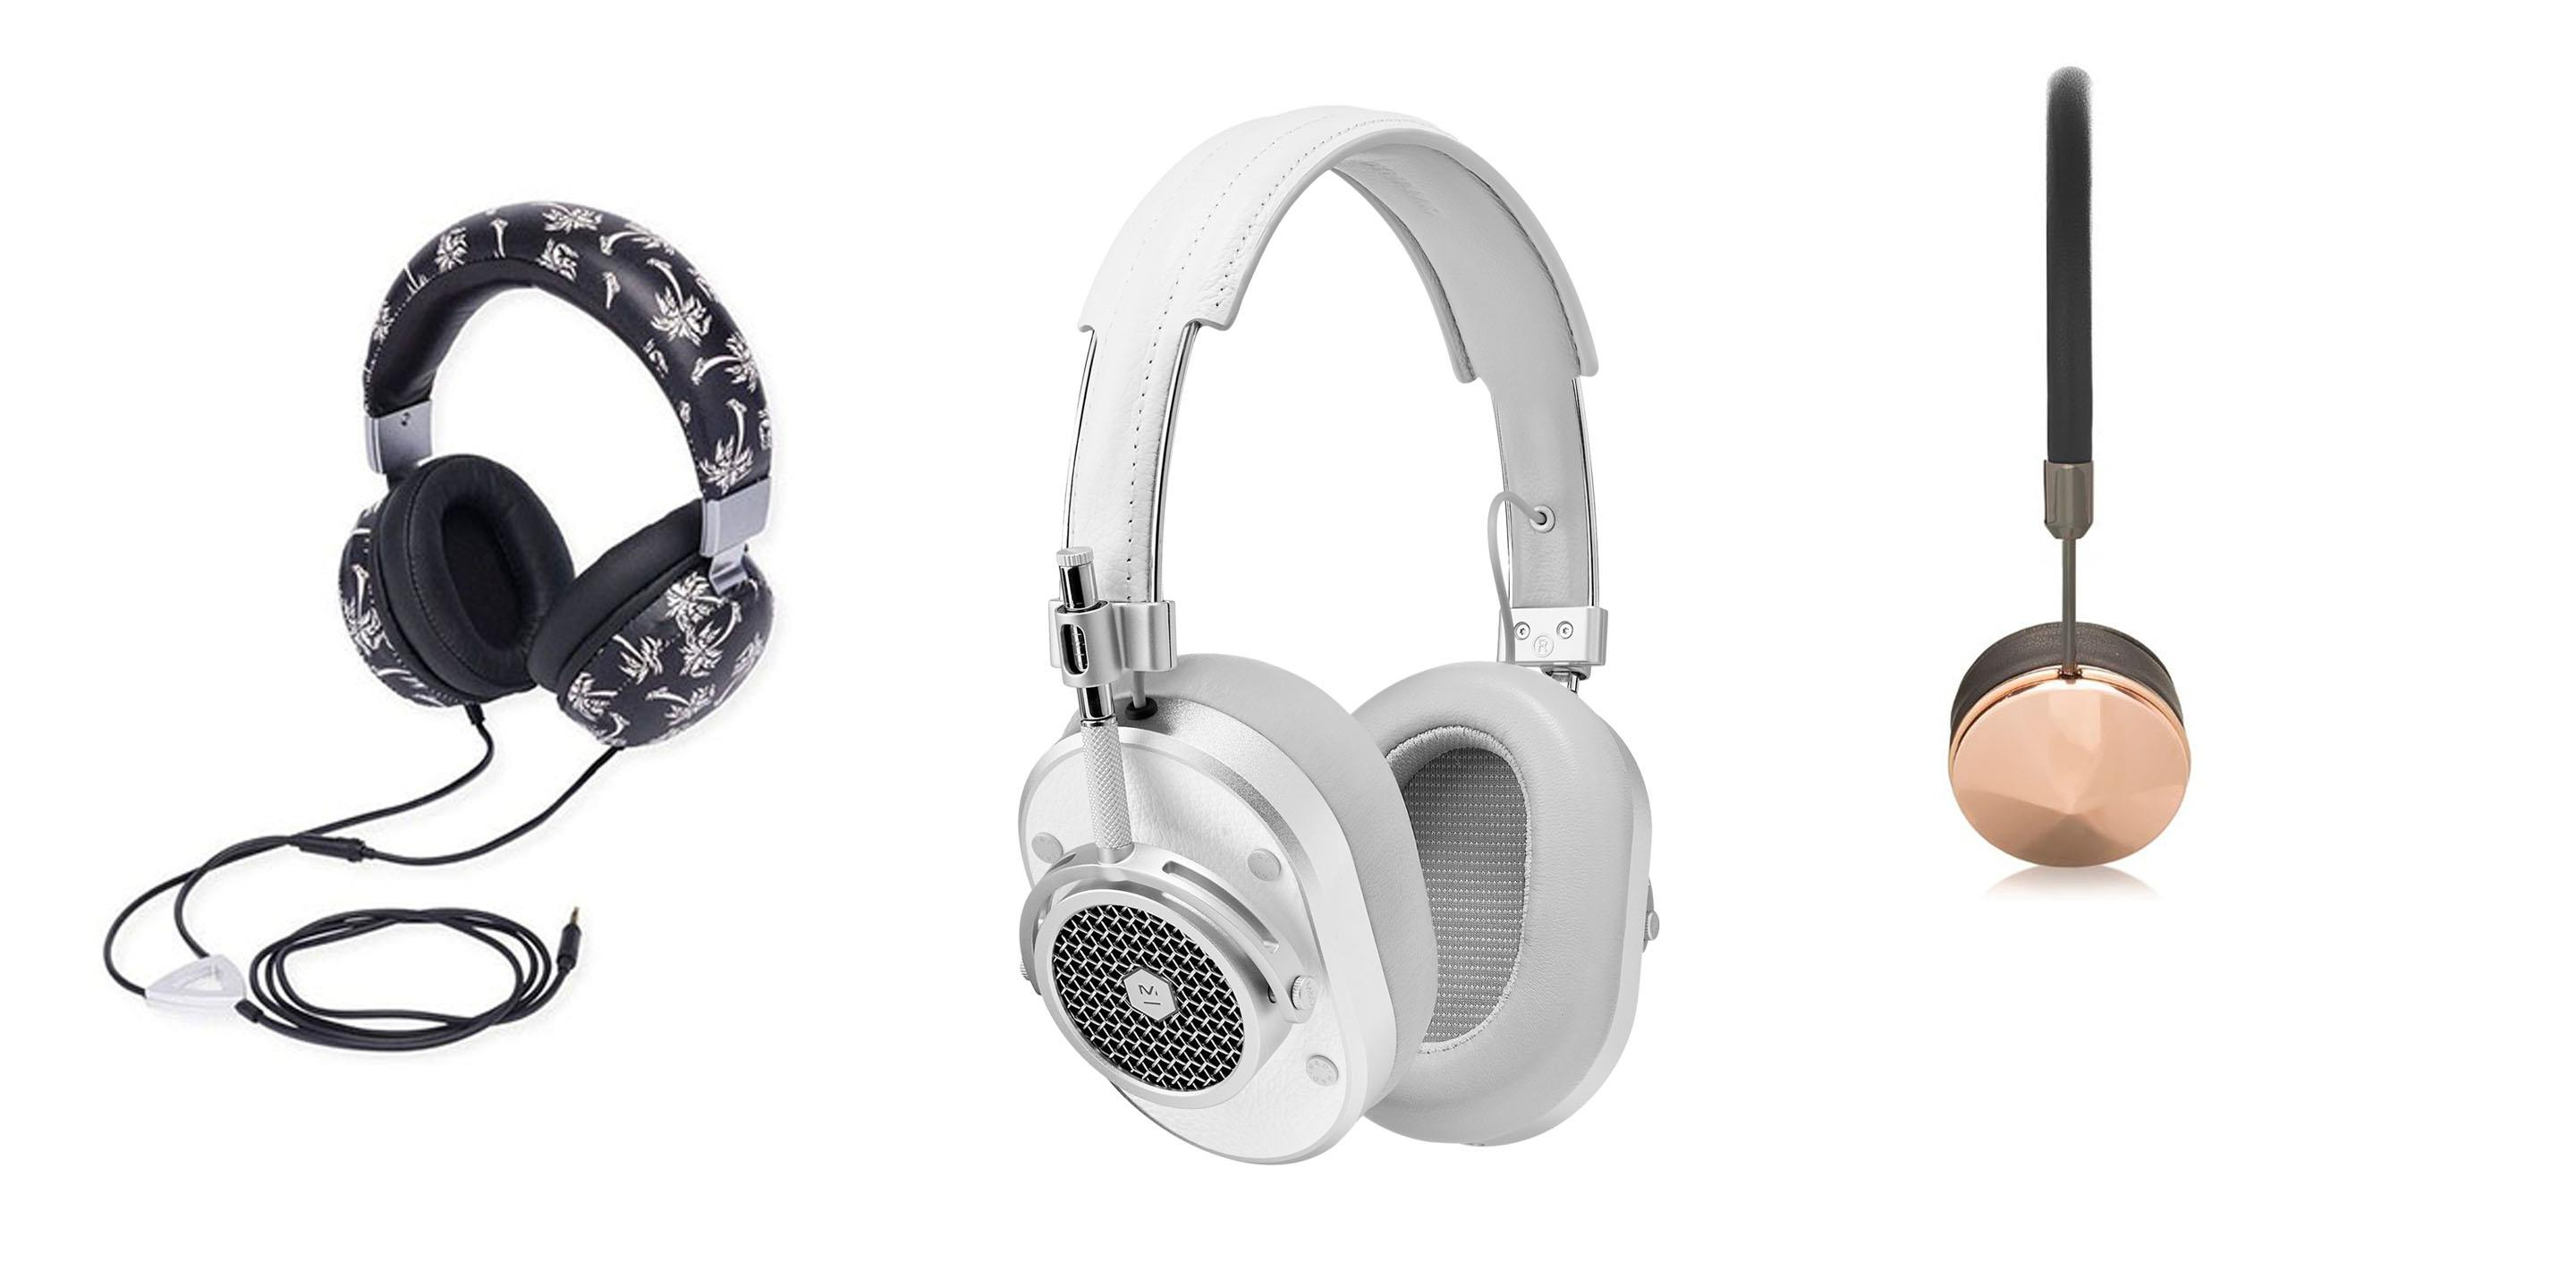 4 Luxe, Fashionable, Trendy Options For Headphones - Furthermore